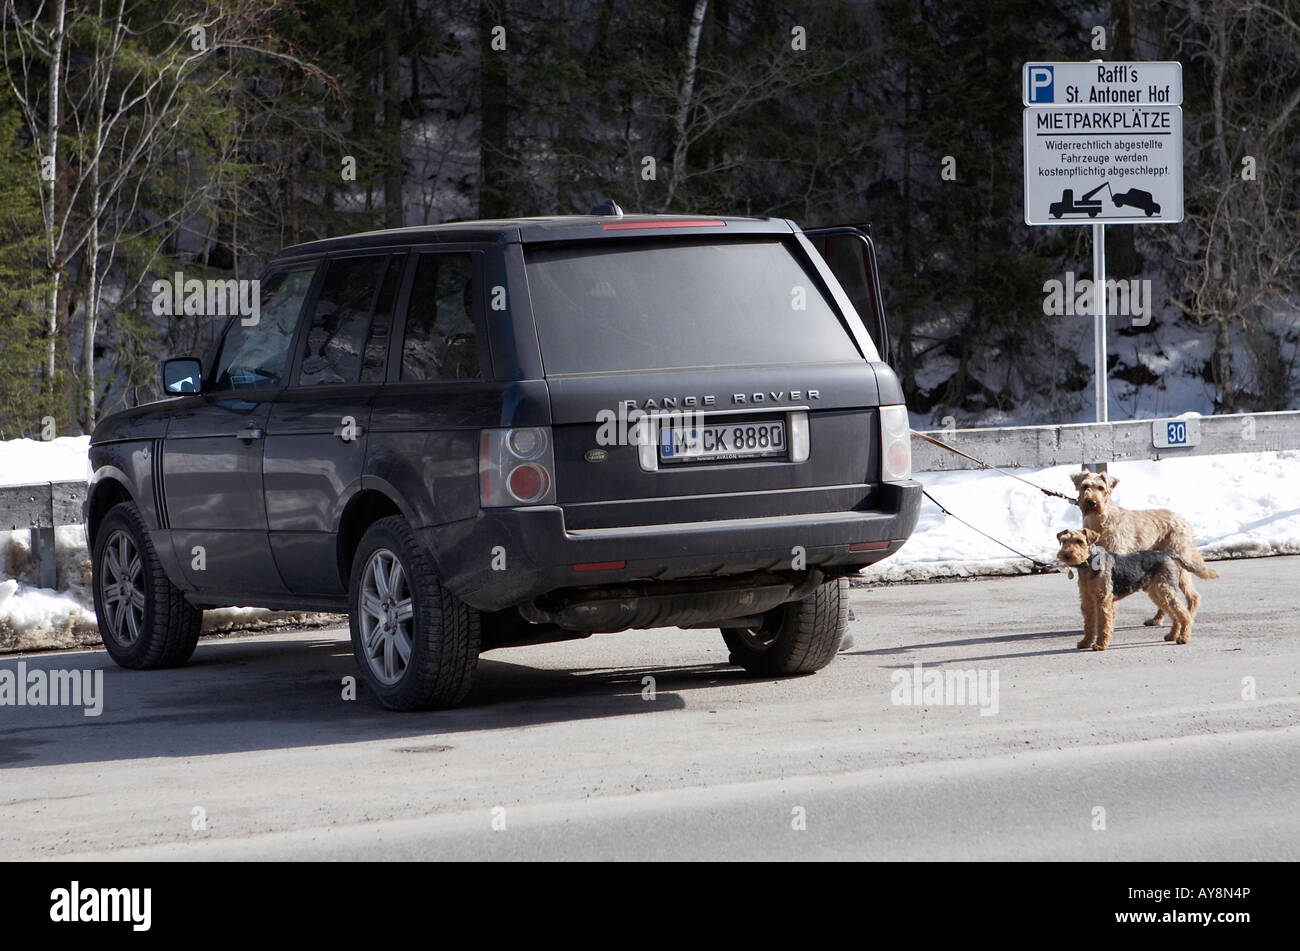 Four wheel drive car with two dogs. - Stock Image